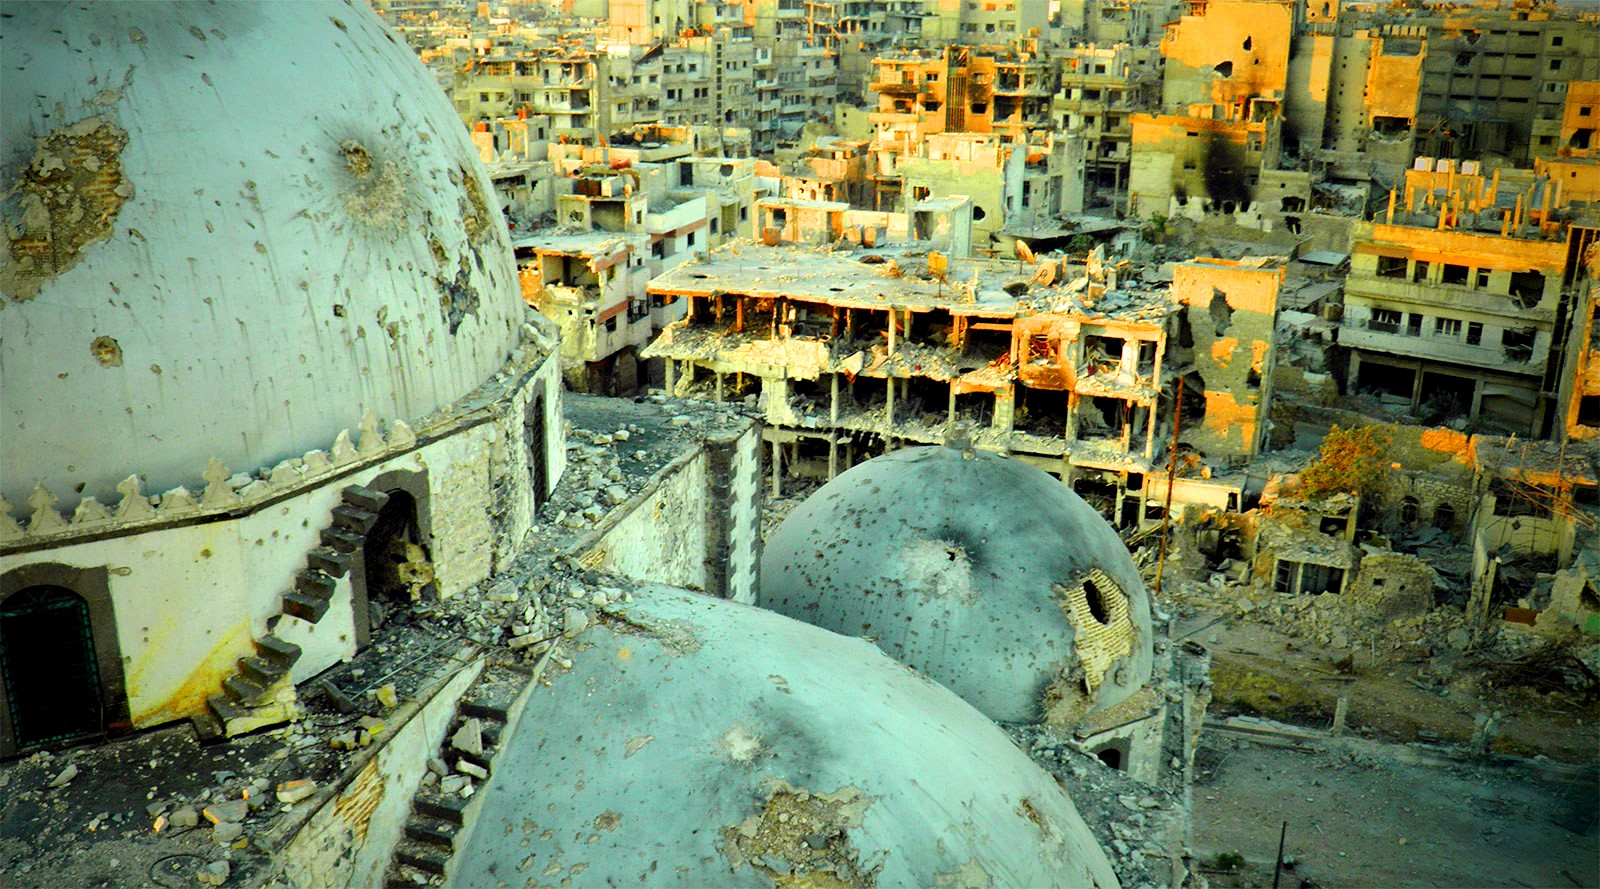 Mosque_destroyed_Syria_AFP-1.jpg